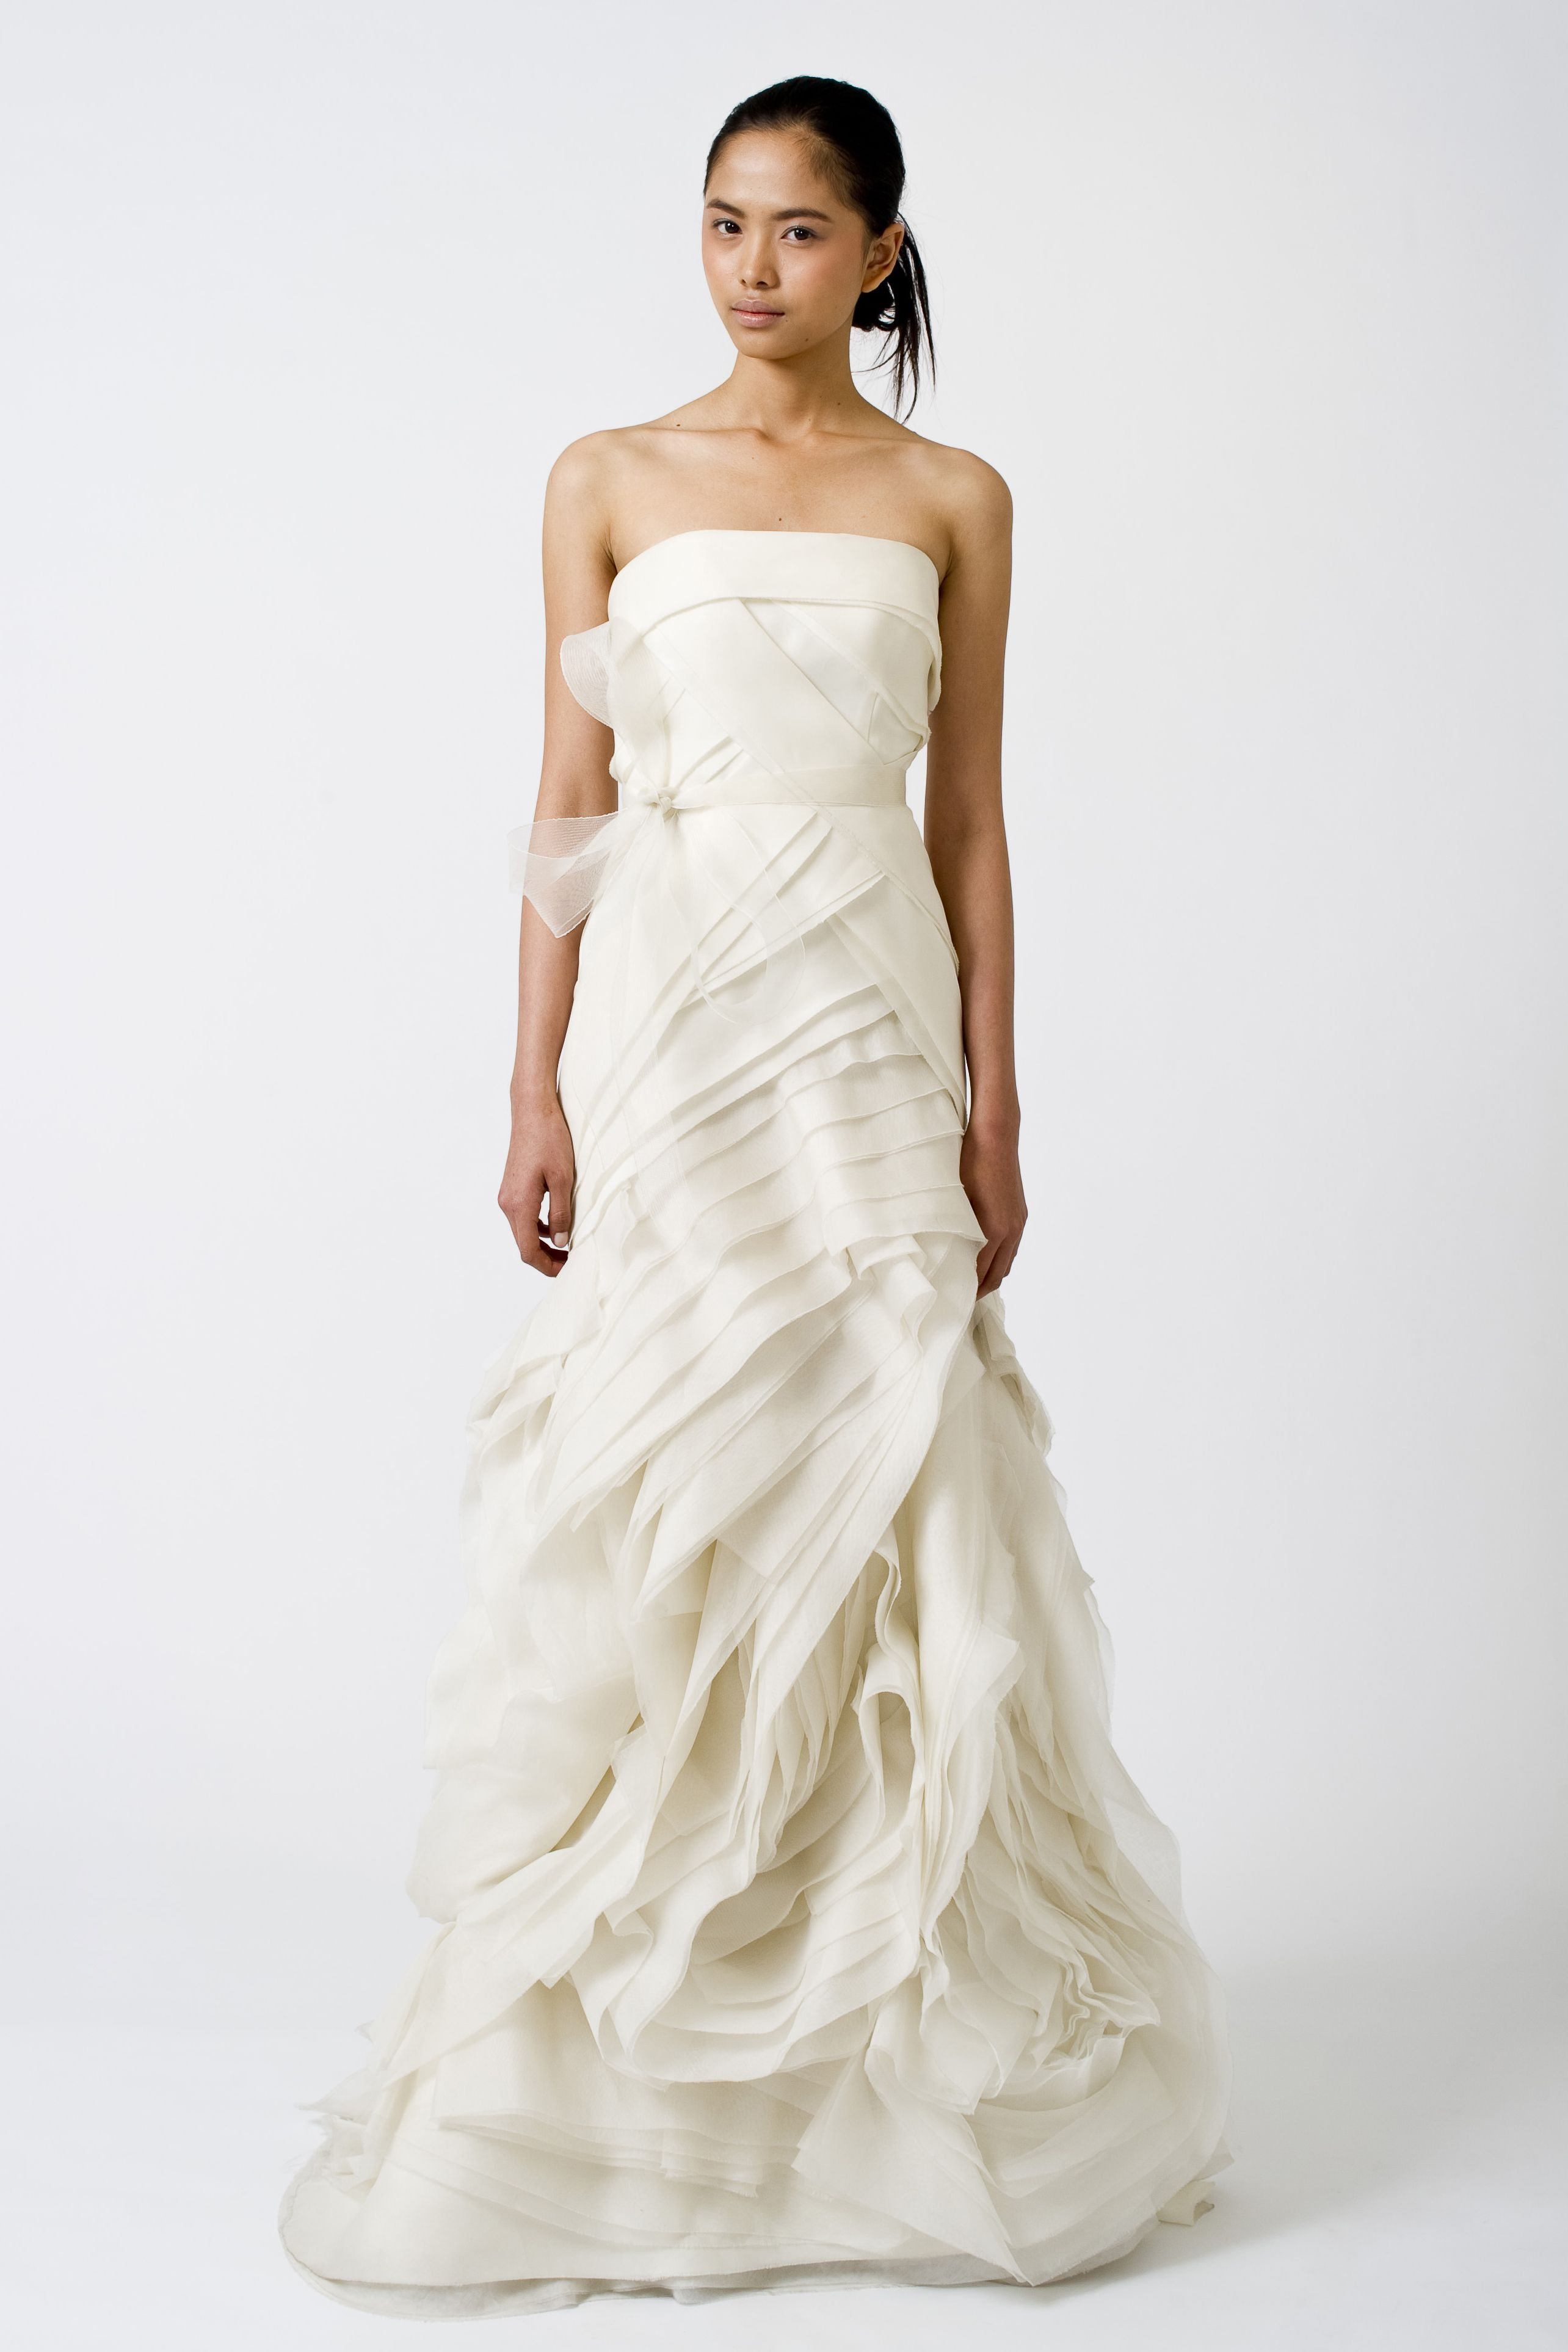 Vera Wang Erica gown. Vera Wang gowns are sold at The Bridal Salon ...